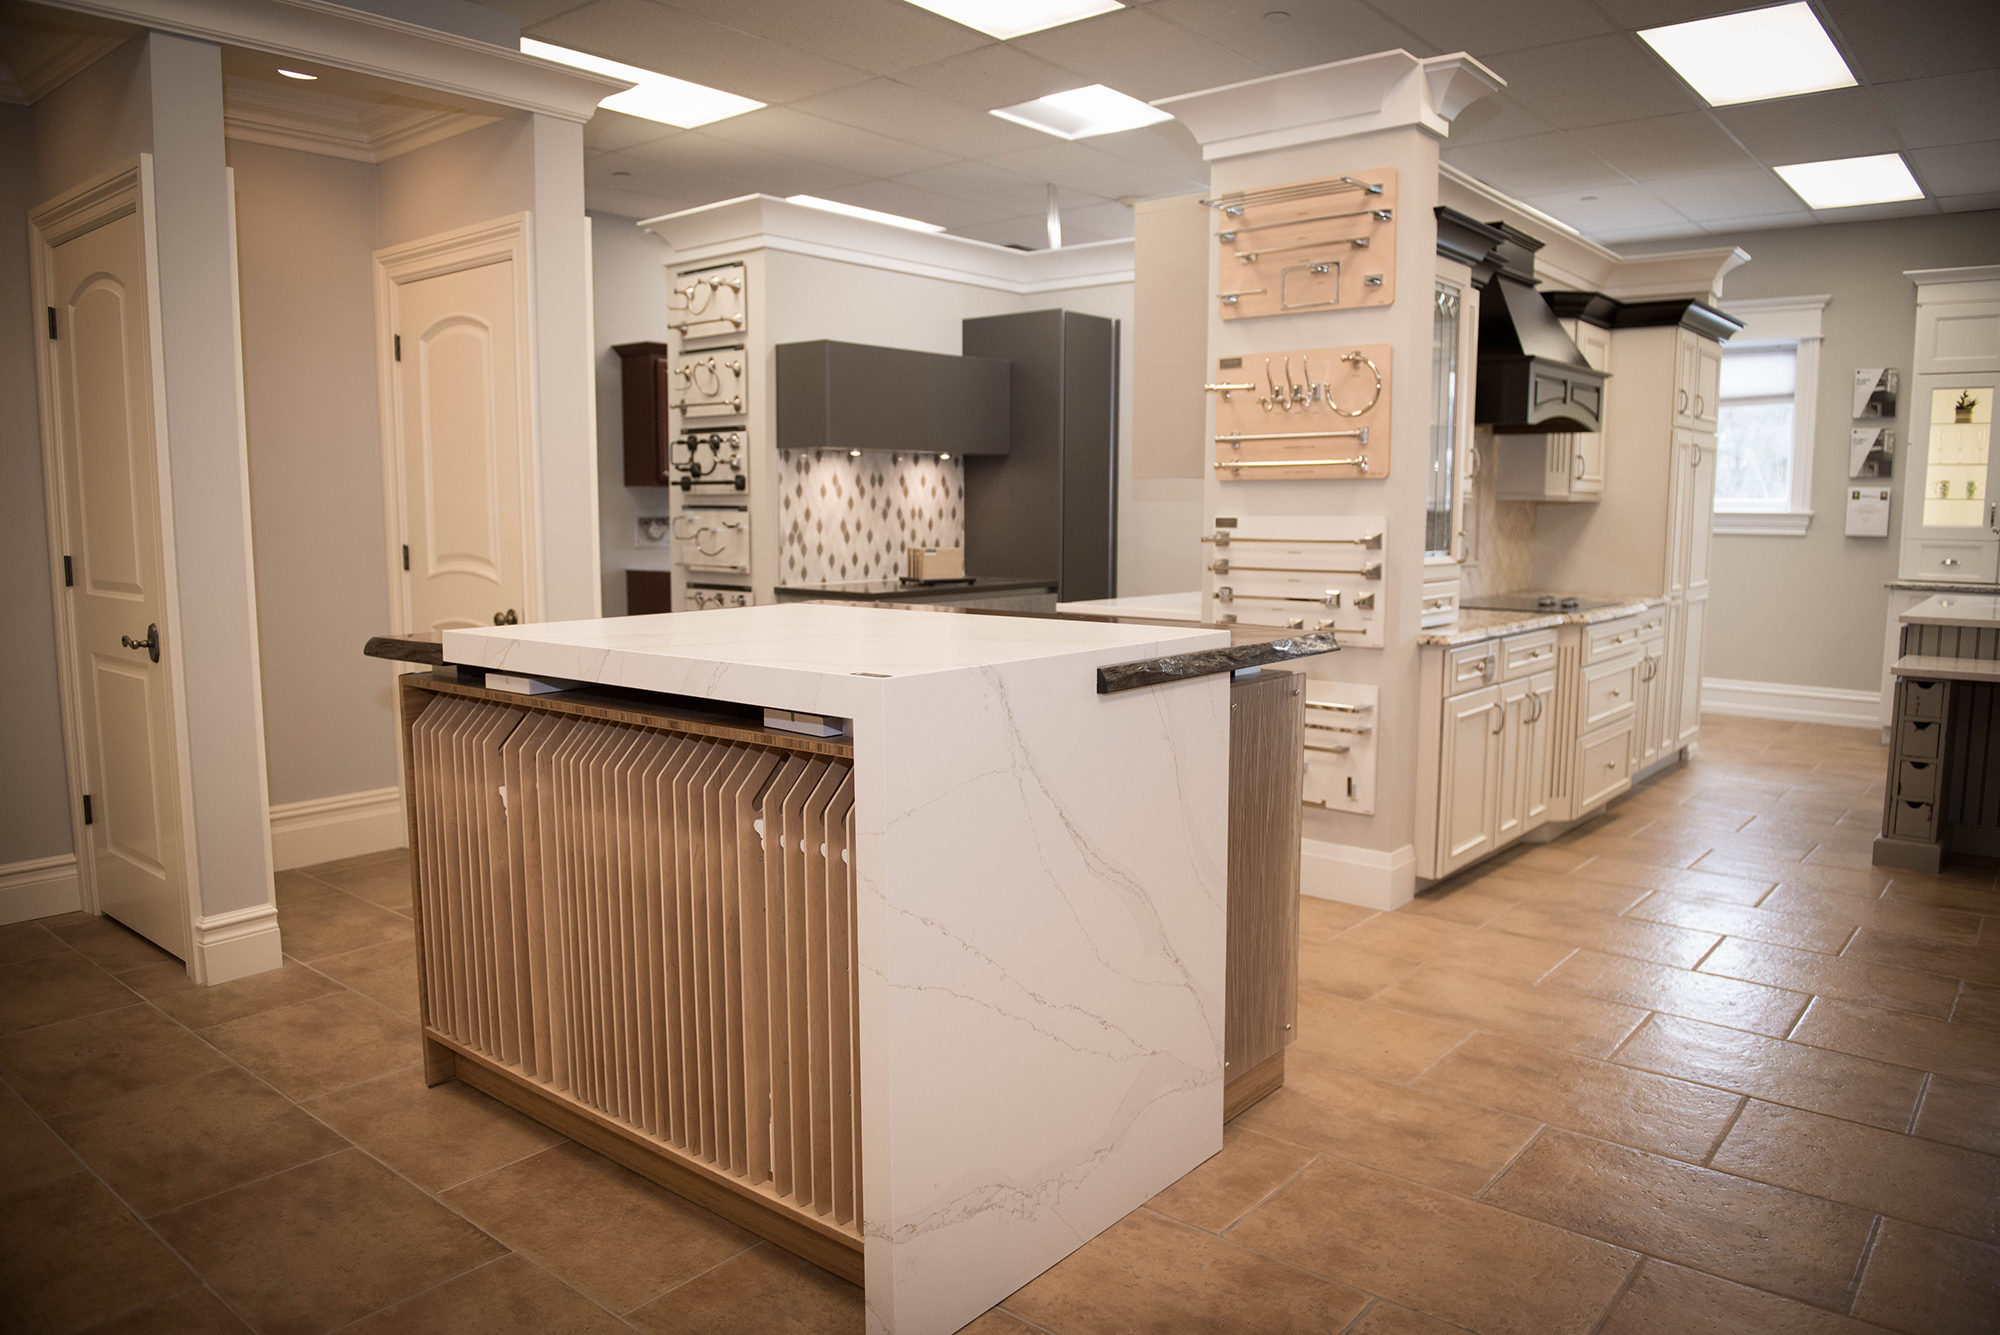 Build Your Dream Kitchen With The Experts At Five Star Millwork